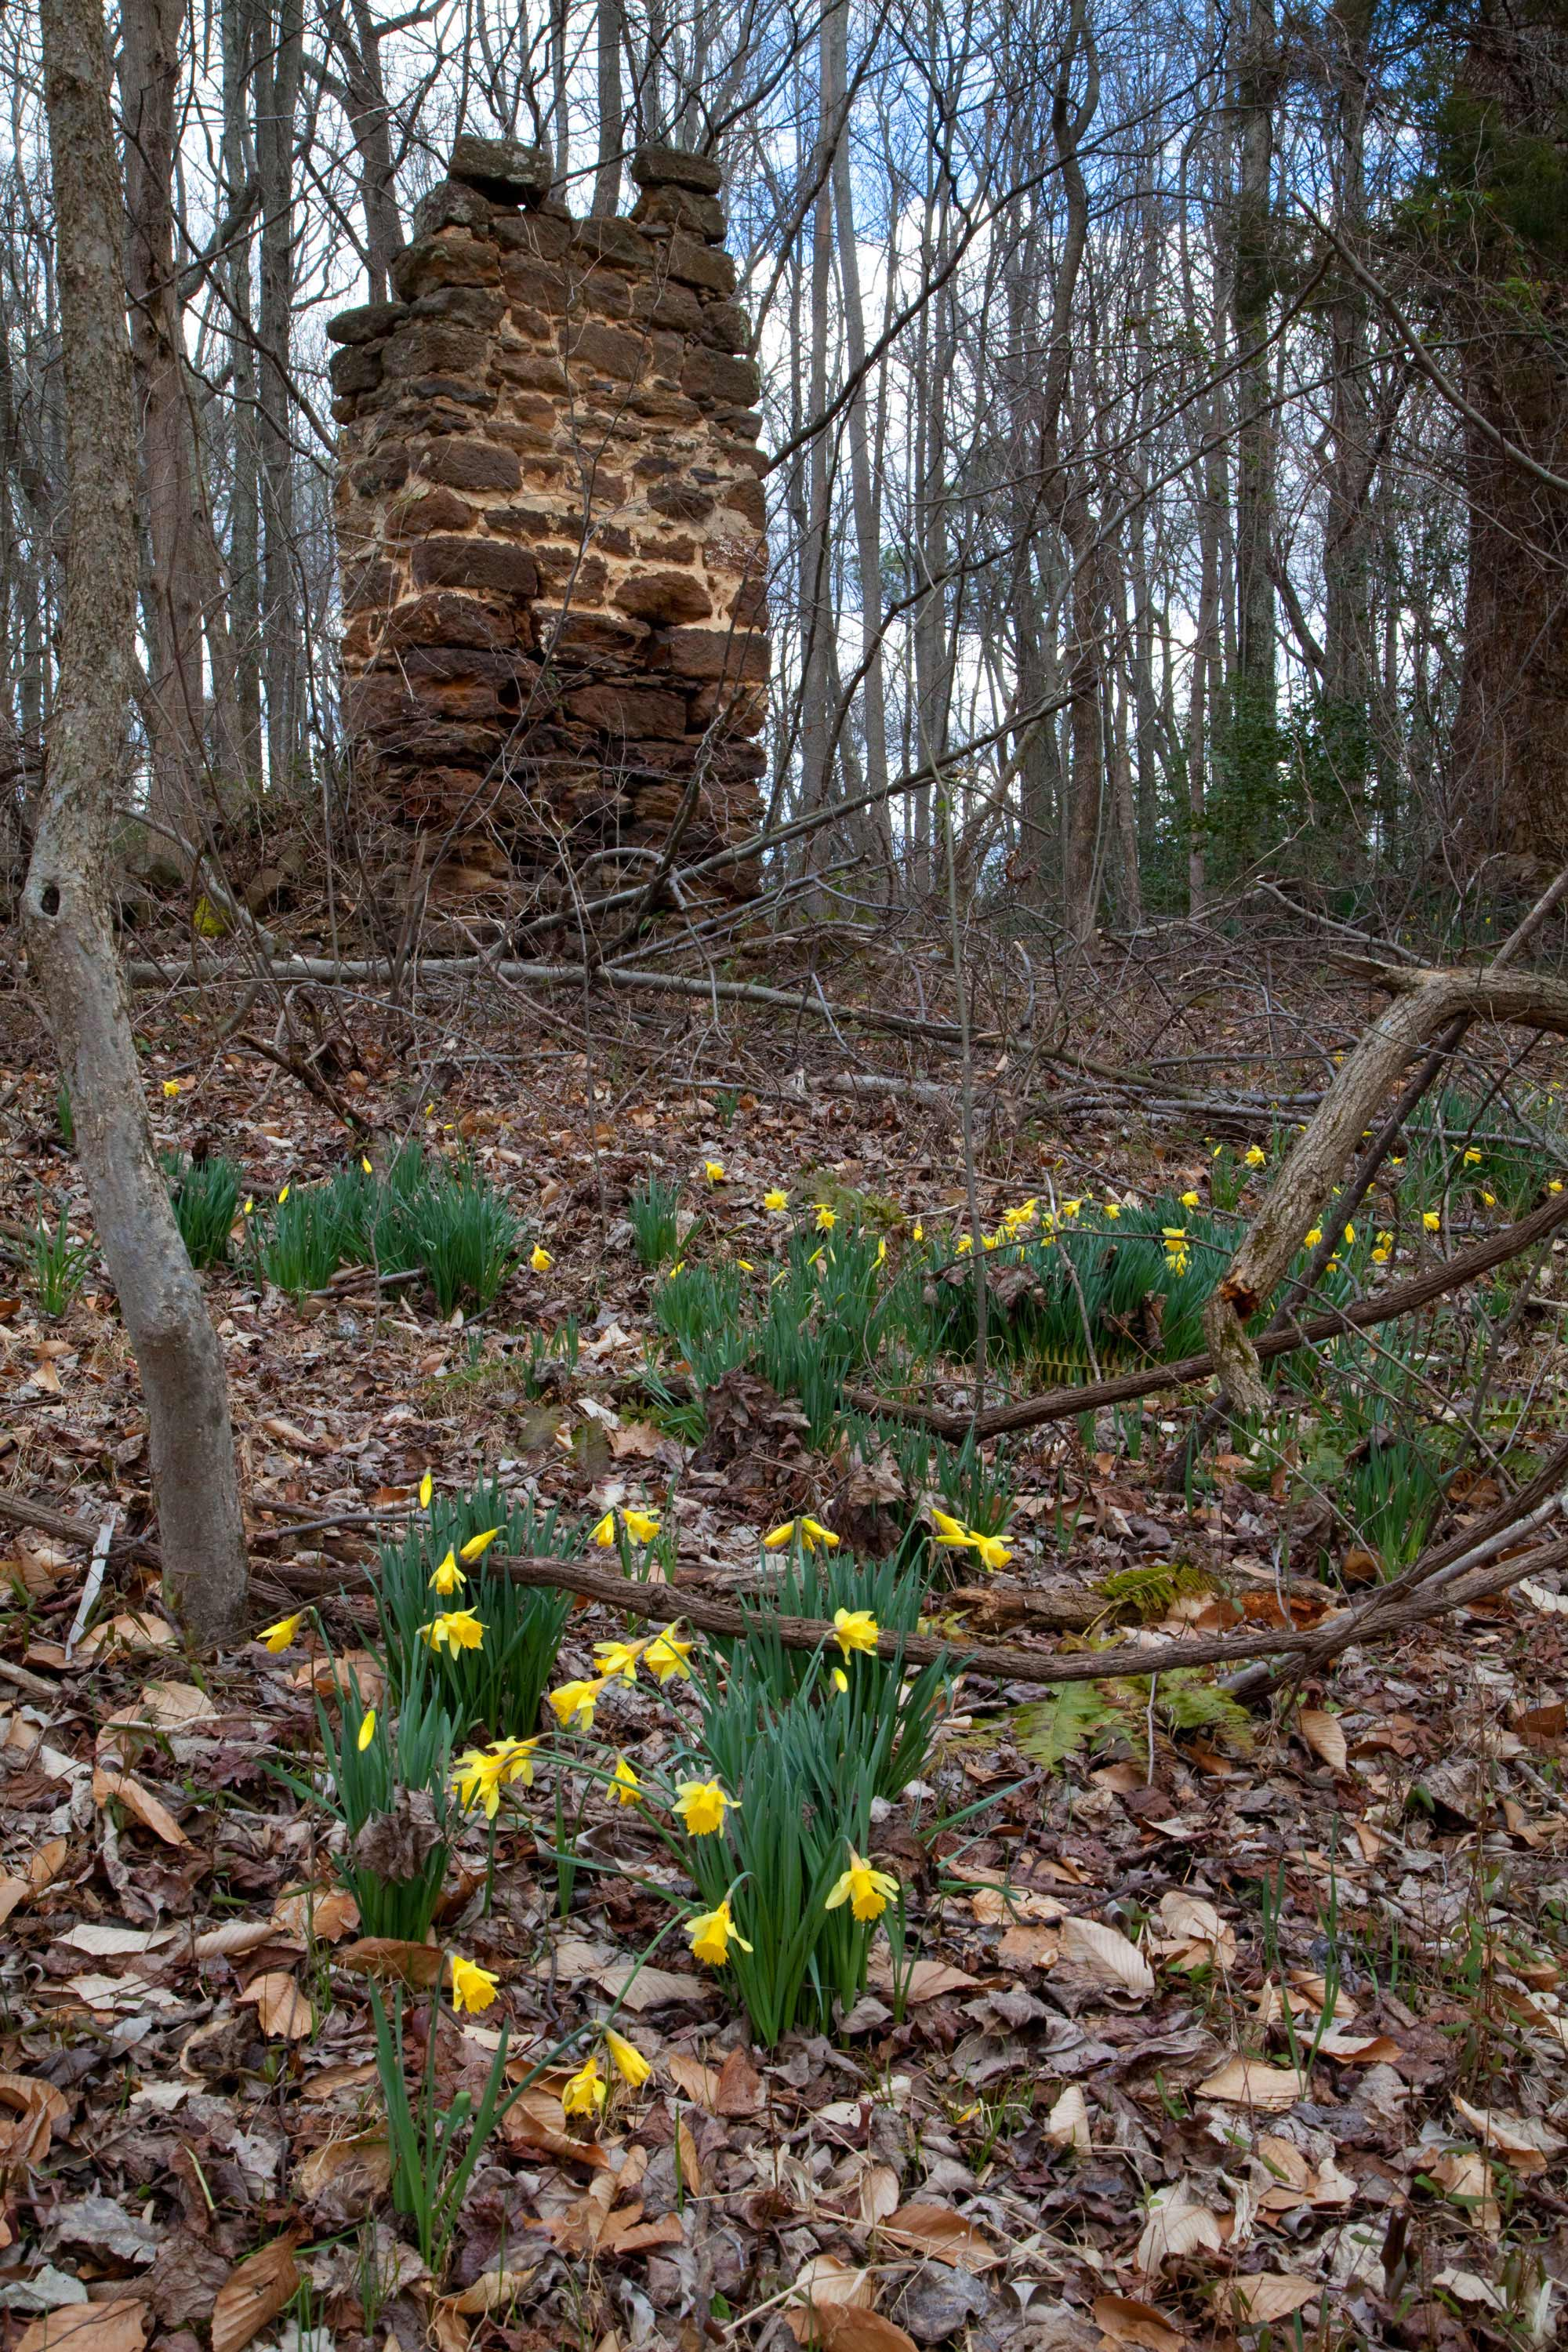 Chimney and daffodils